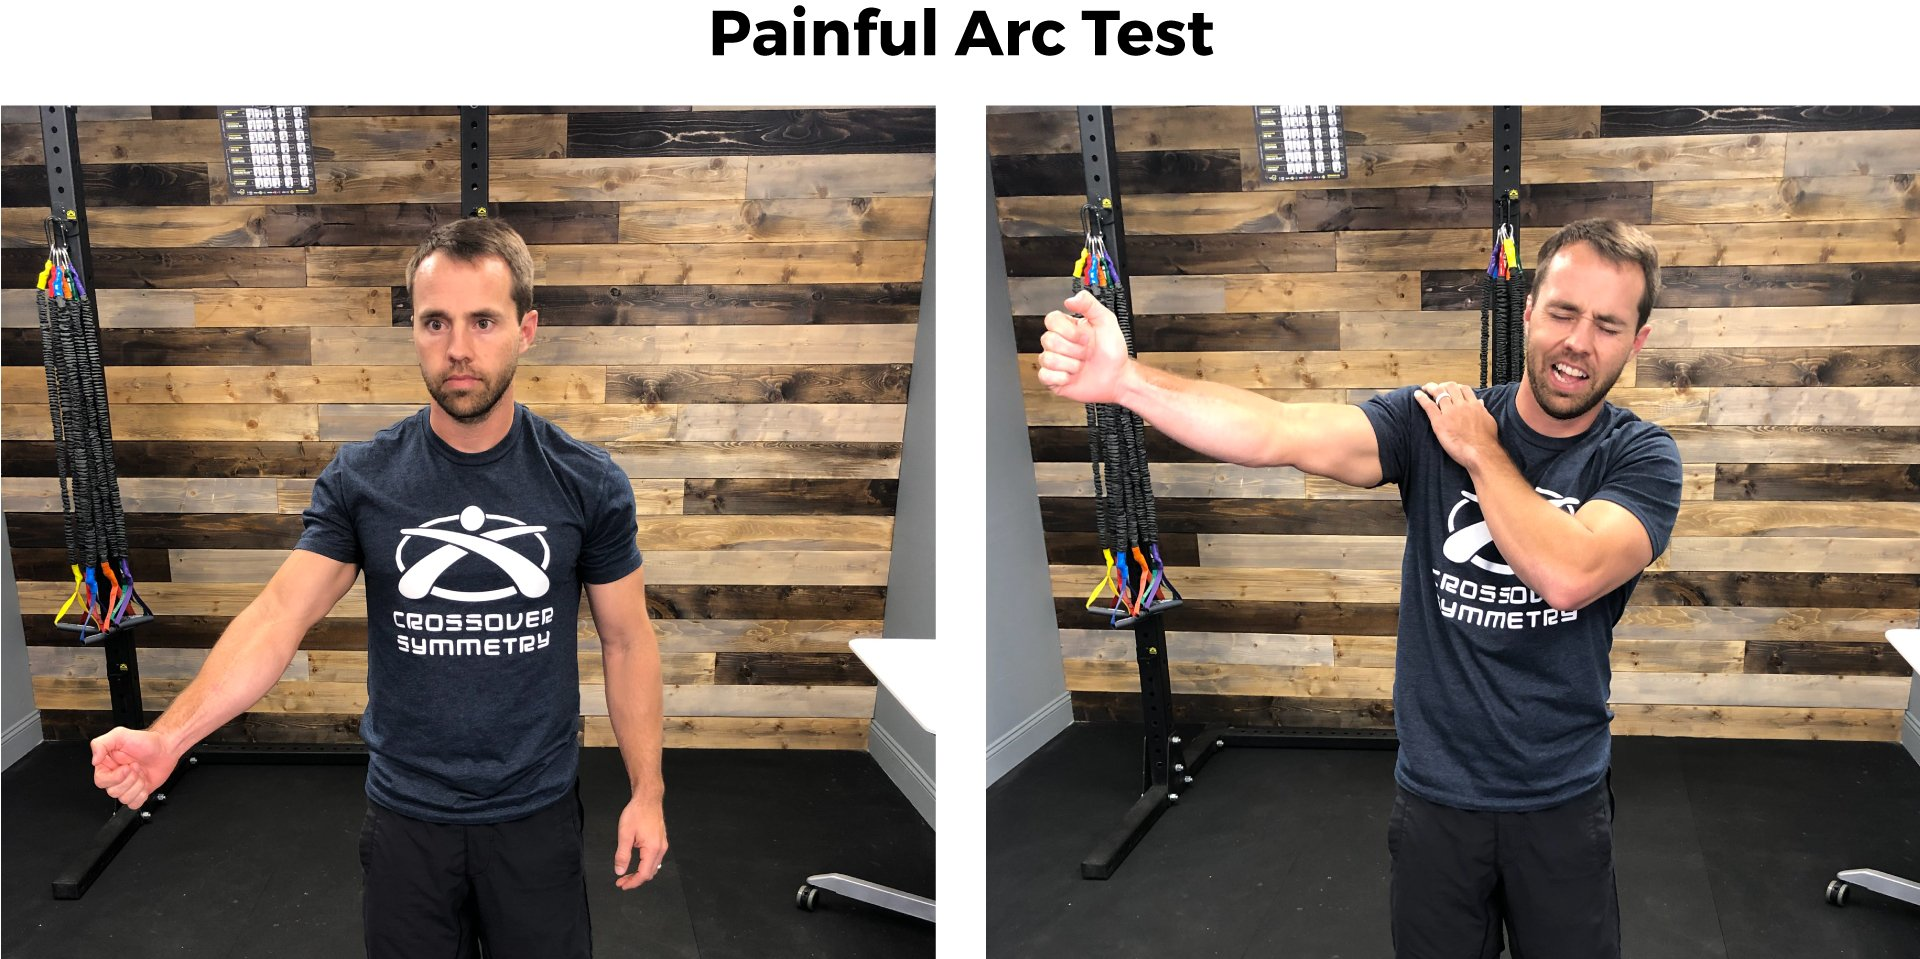 Shoulder impingement test painful arc test